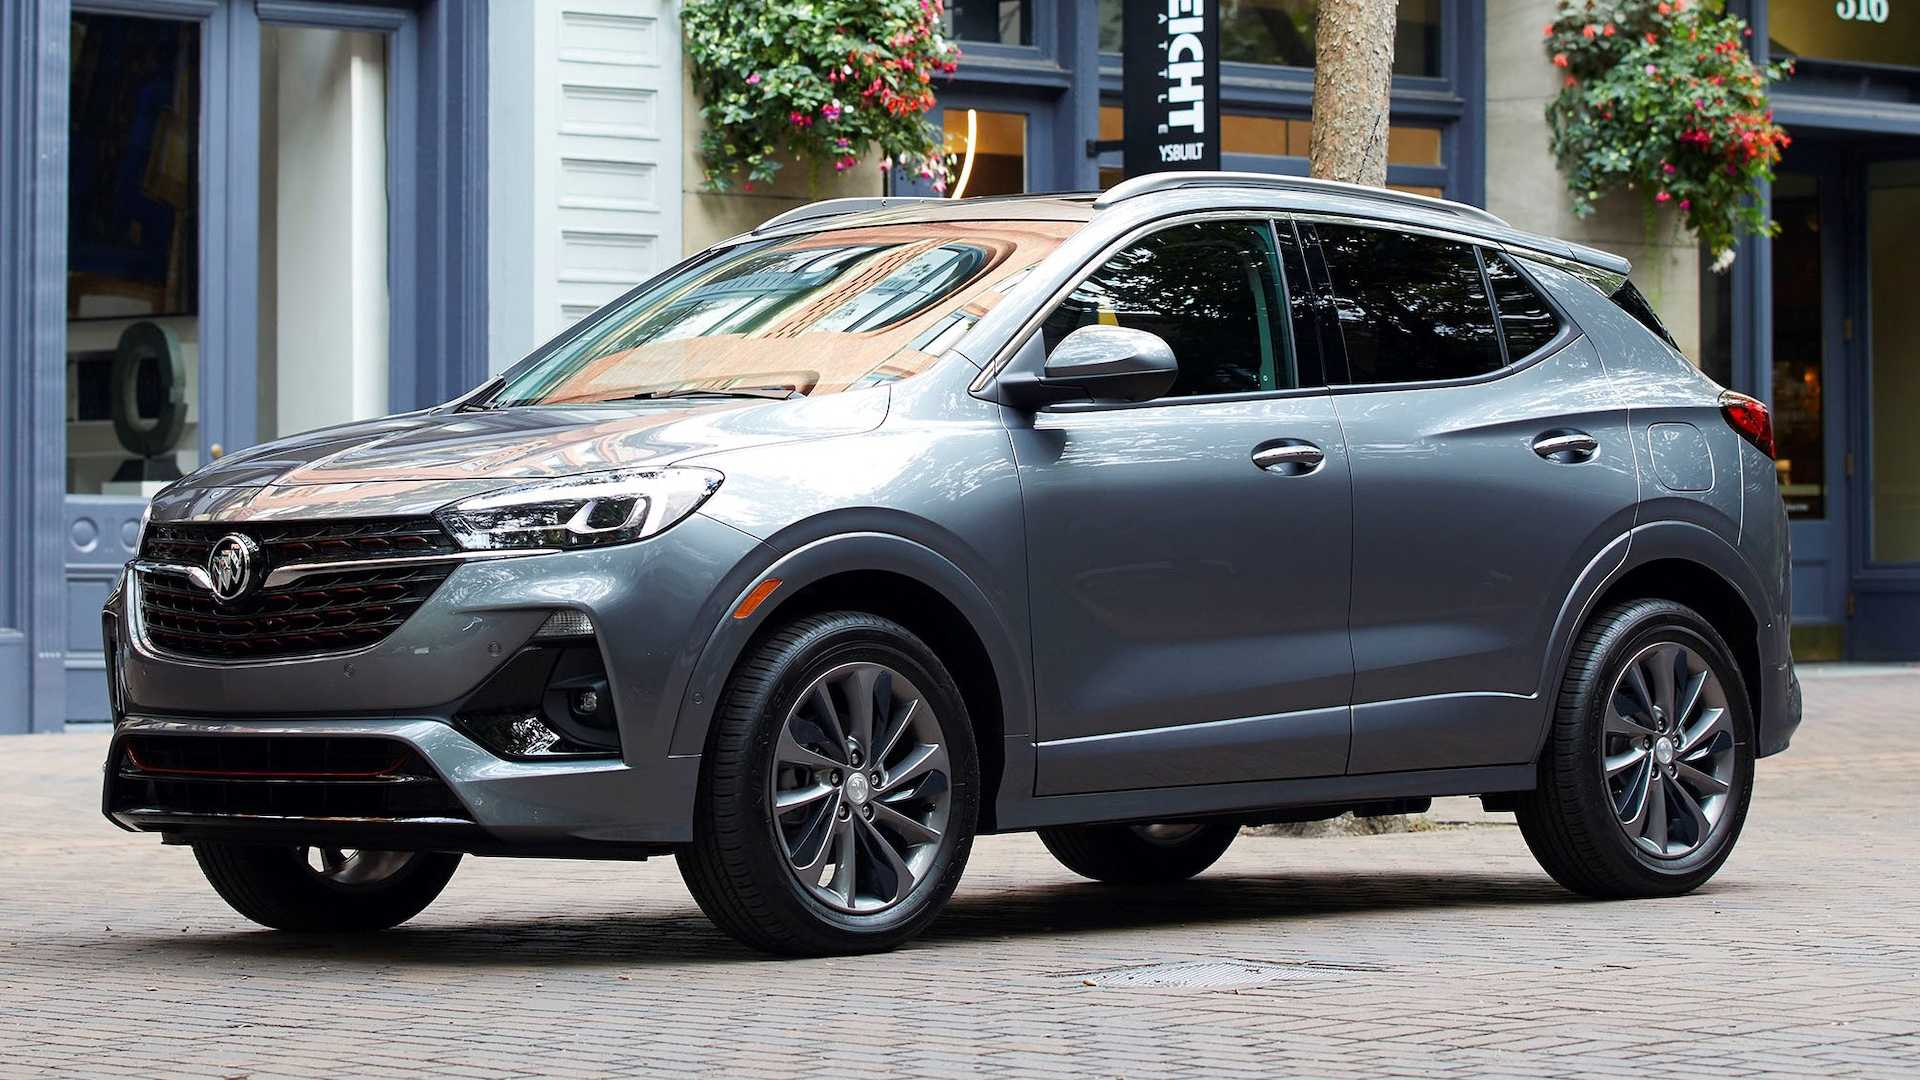 2021 Buick Encore Gx Details Emerge: Styling Tweaks, More Tech New 2022 Buick Encore Options, Oil Type, Pictures